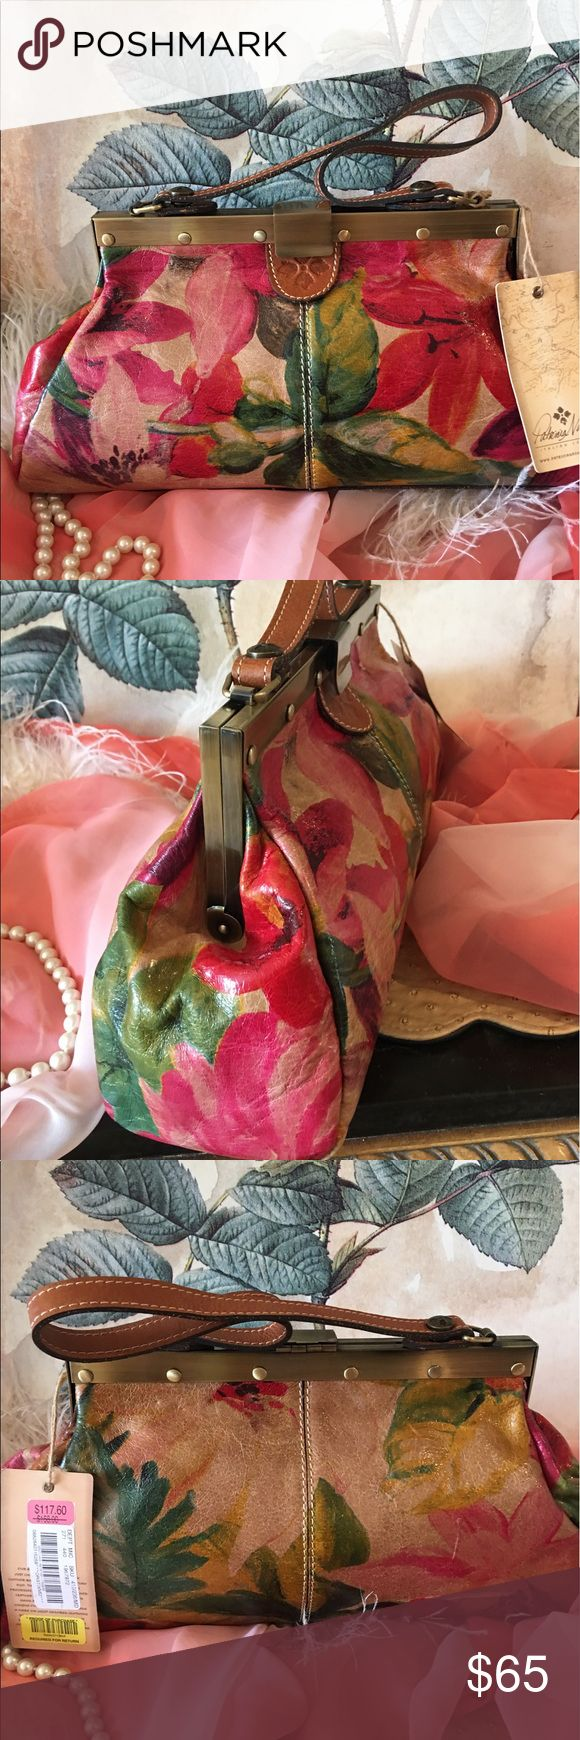 """Patricia Nash Handbag NWT OMG beautiful Patricia Nash NWT gorgeous floral leather satchel style Handbag that is simply beautiful. Measures about 14 1/2"""" across the bottom, 8"""" tall, 3"""" deep across bottom, and strap drop is about 9"""". Beautiful bright colors make this a gorgeous statement bag. I have the matching wallet for sale that is new and I also have a pre-owned zipper cosmetic pouch that is in very good condition if interested. I consider all reasonable offers. Thank you. Patricia Nash…"""